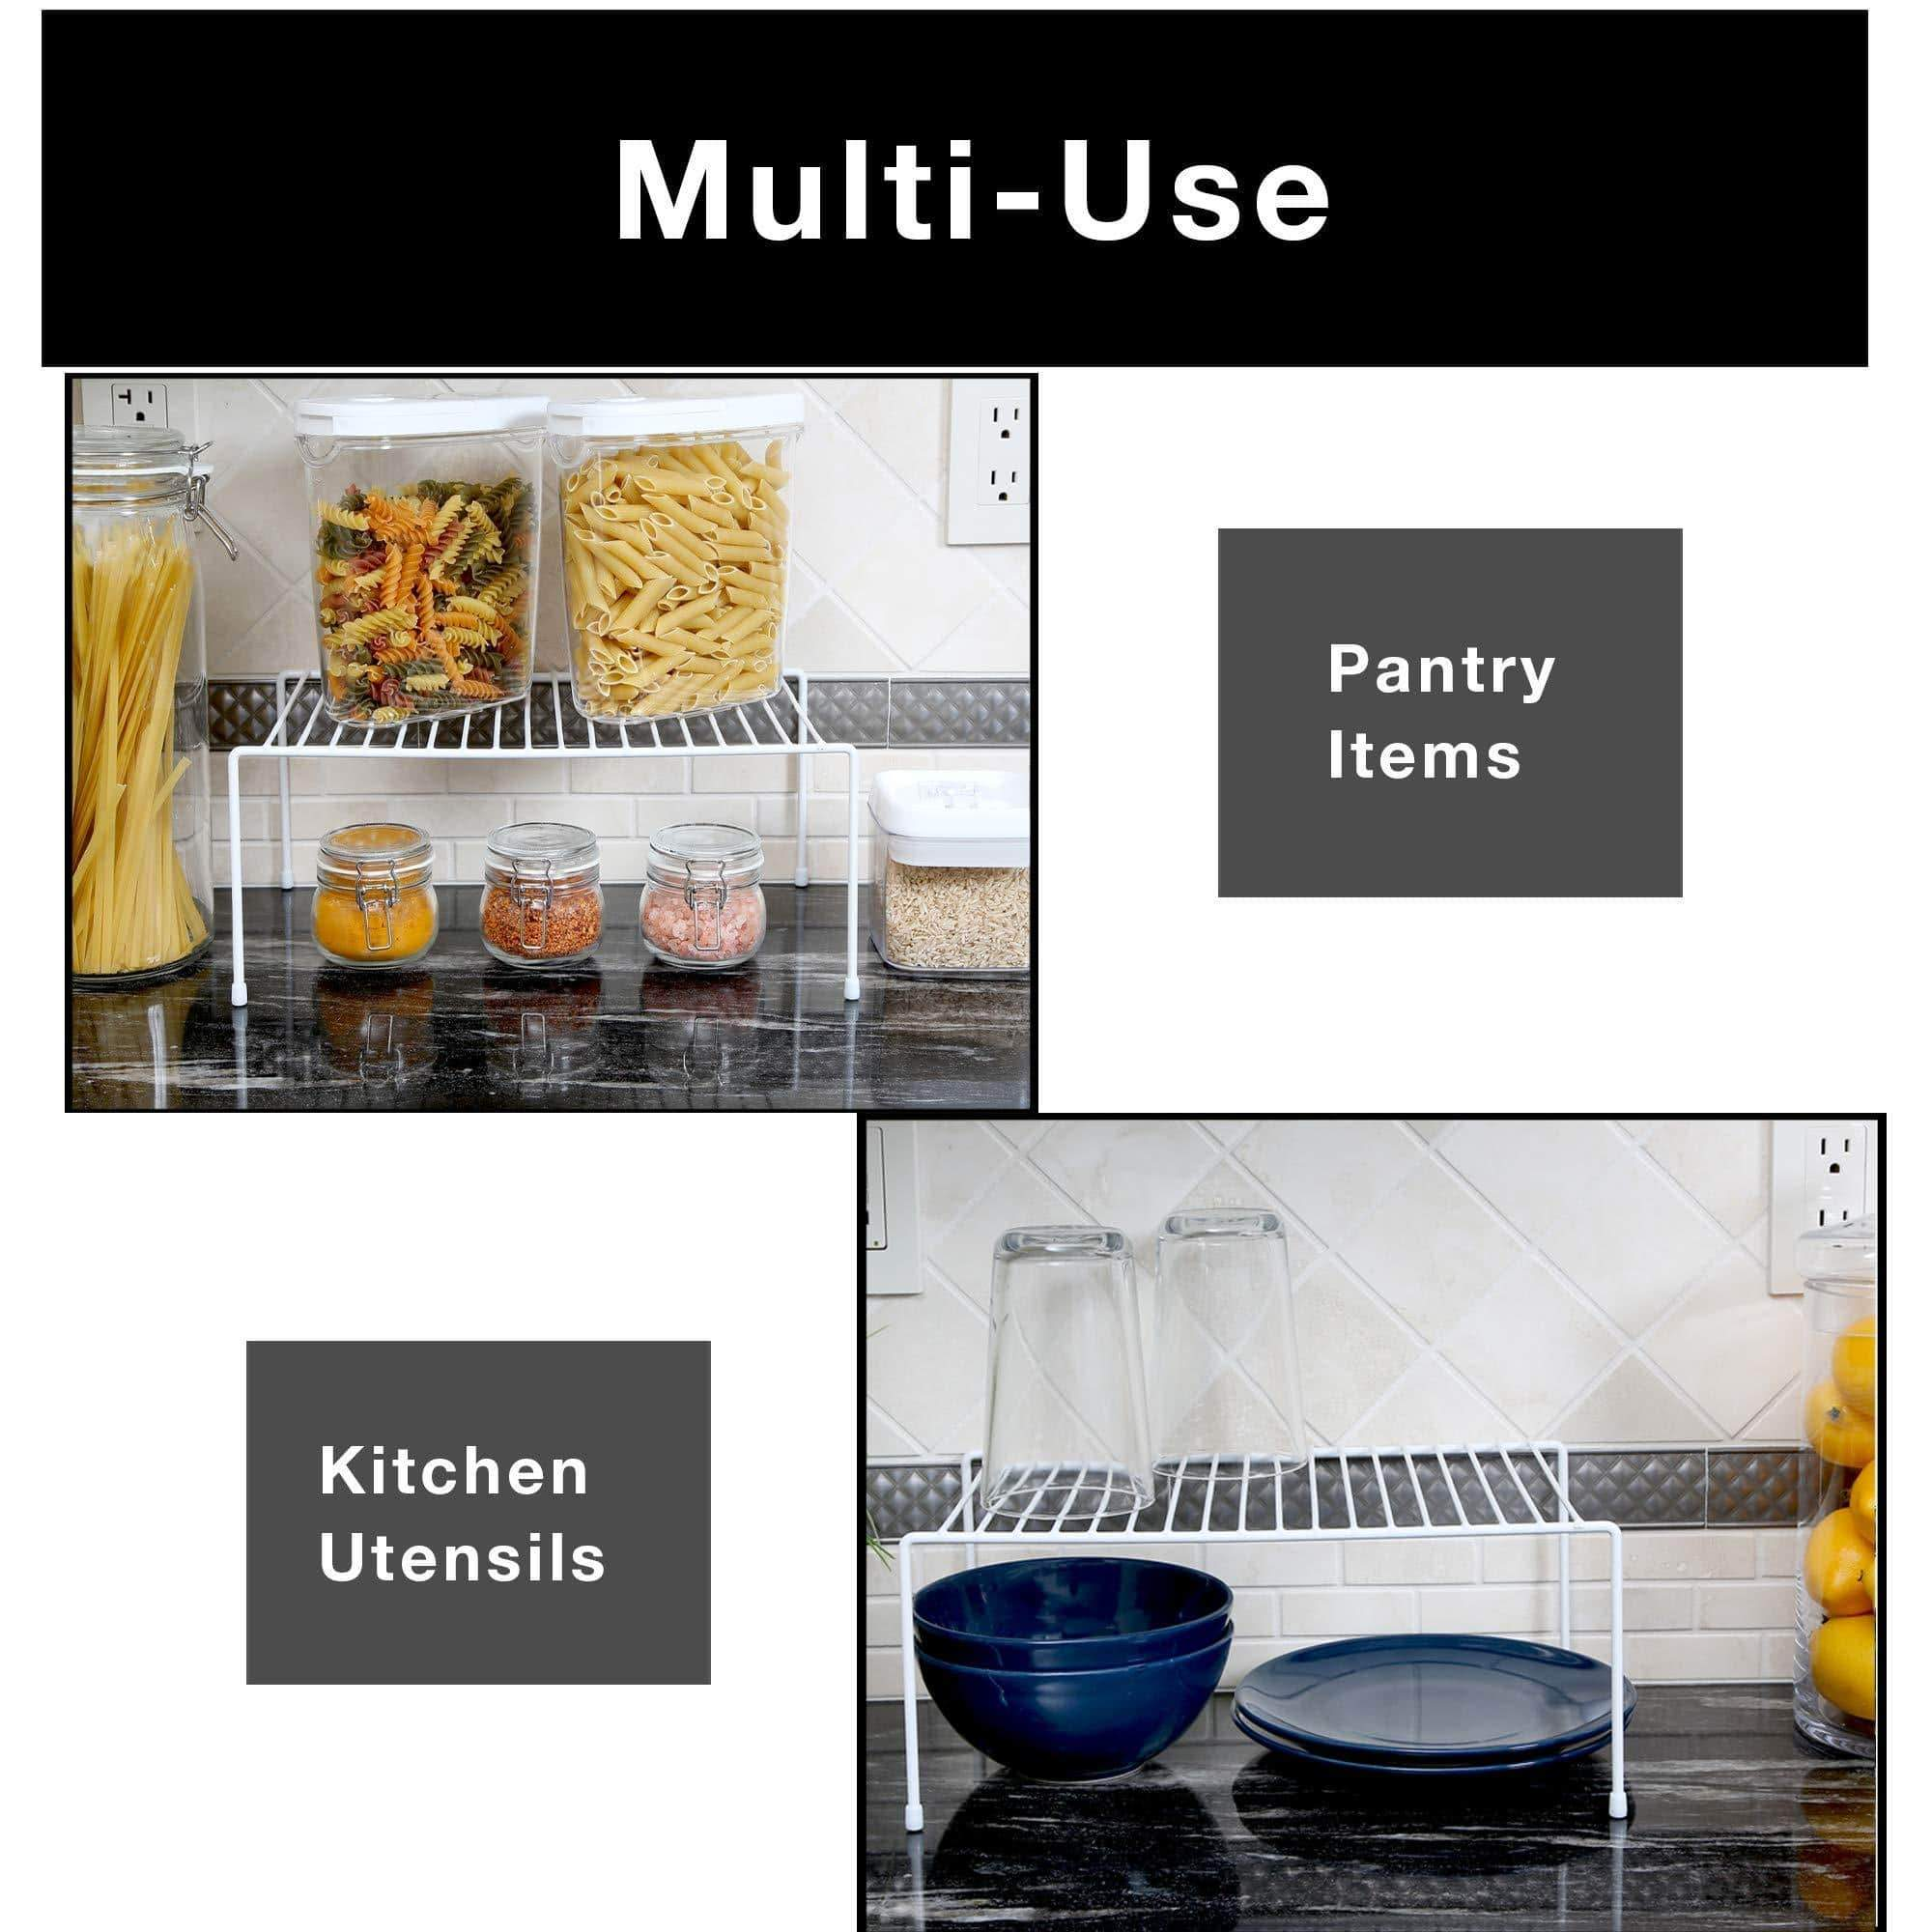 Buy smart design kitchen storage shelf rack w scratch resistant feet medium steel rust resistant finish for cups dishes cabinet pantry organization kitchen 13 25 x 6 inch white